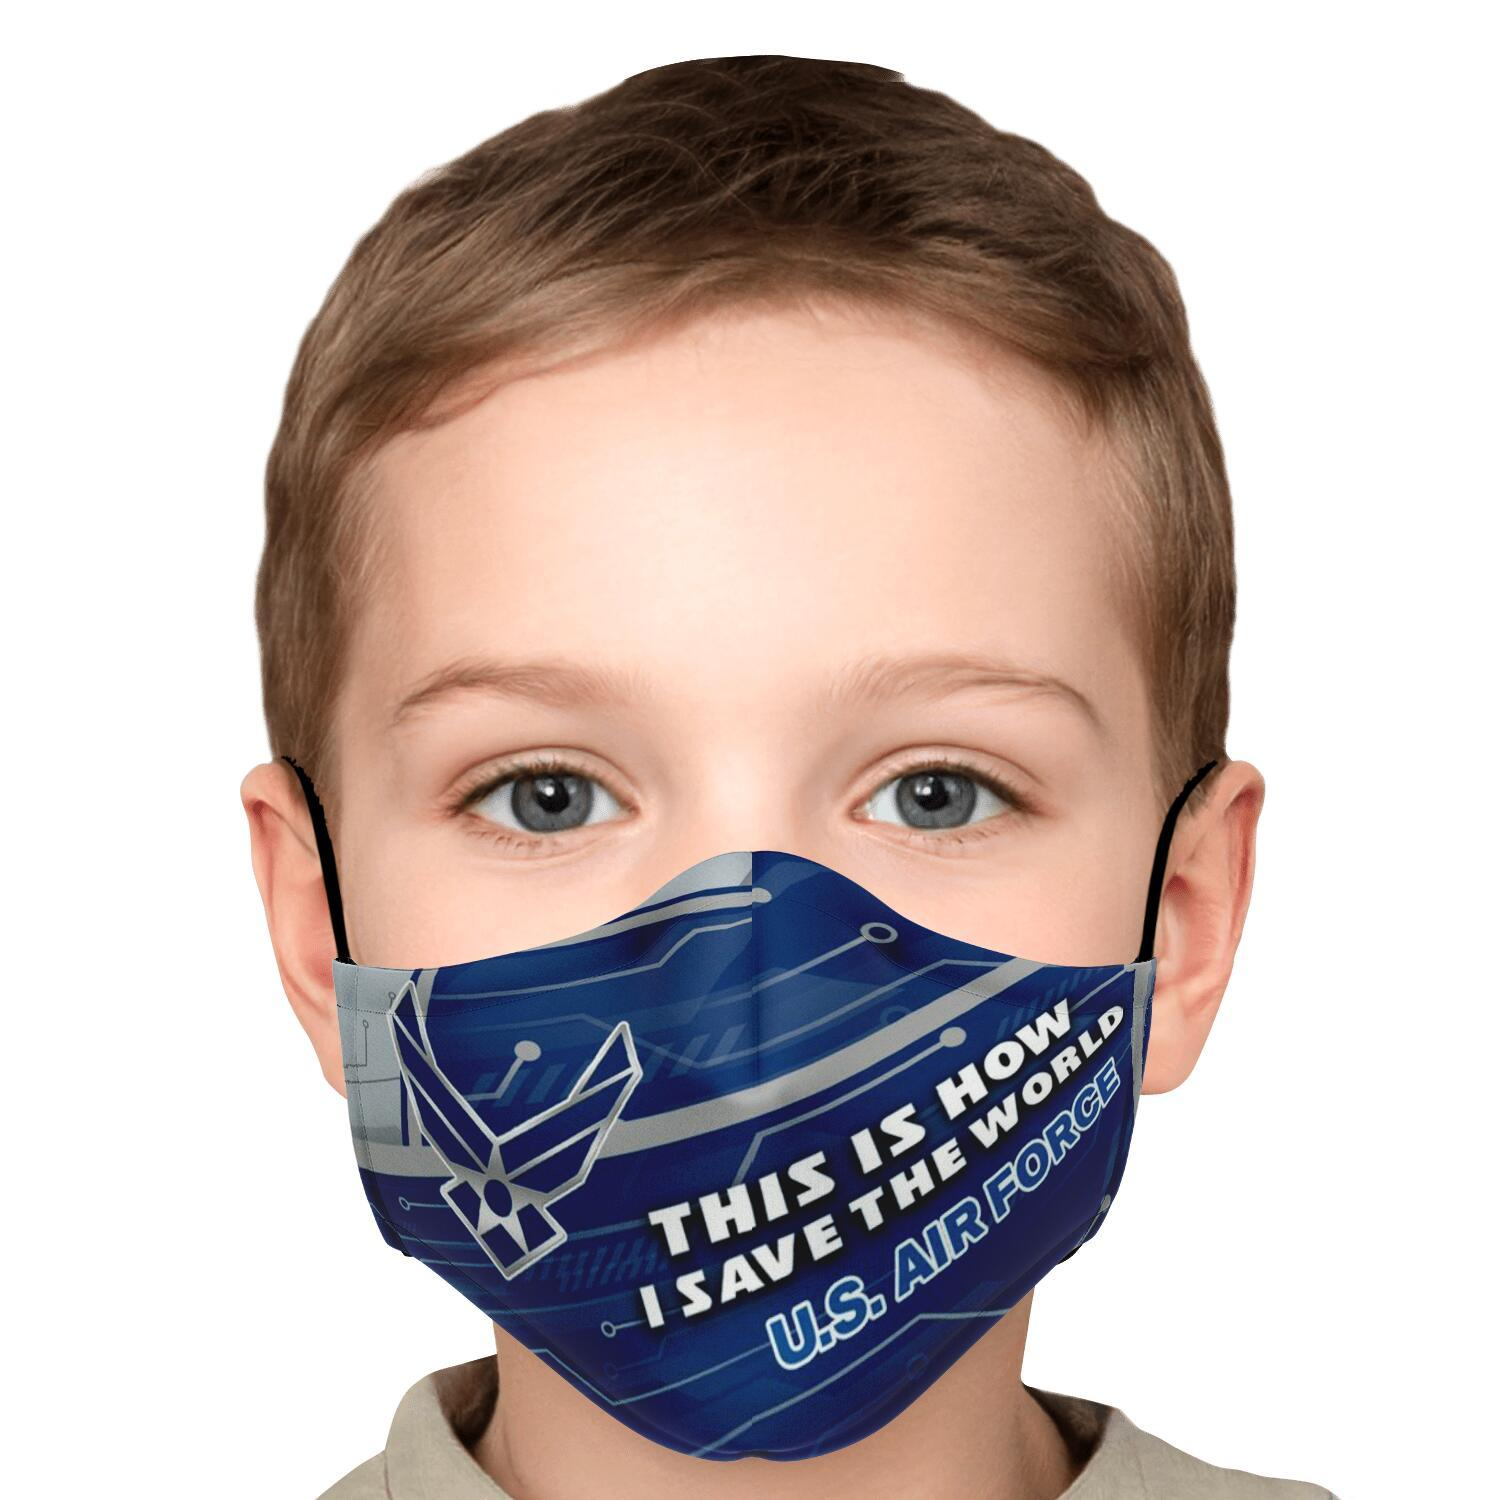 This Is How I Save The World U.S. Air Force Face Masks 5